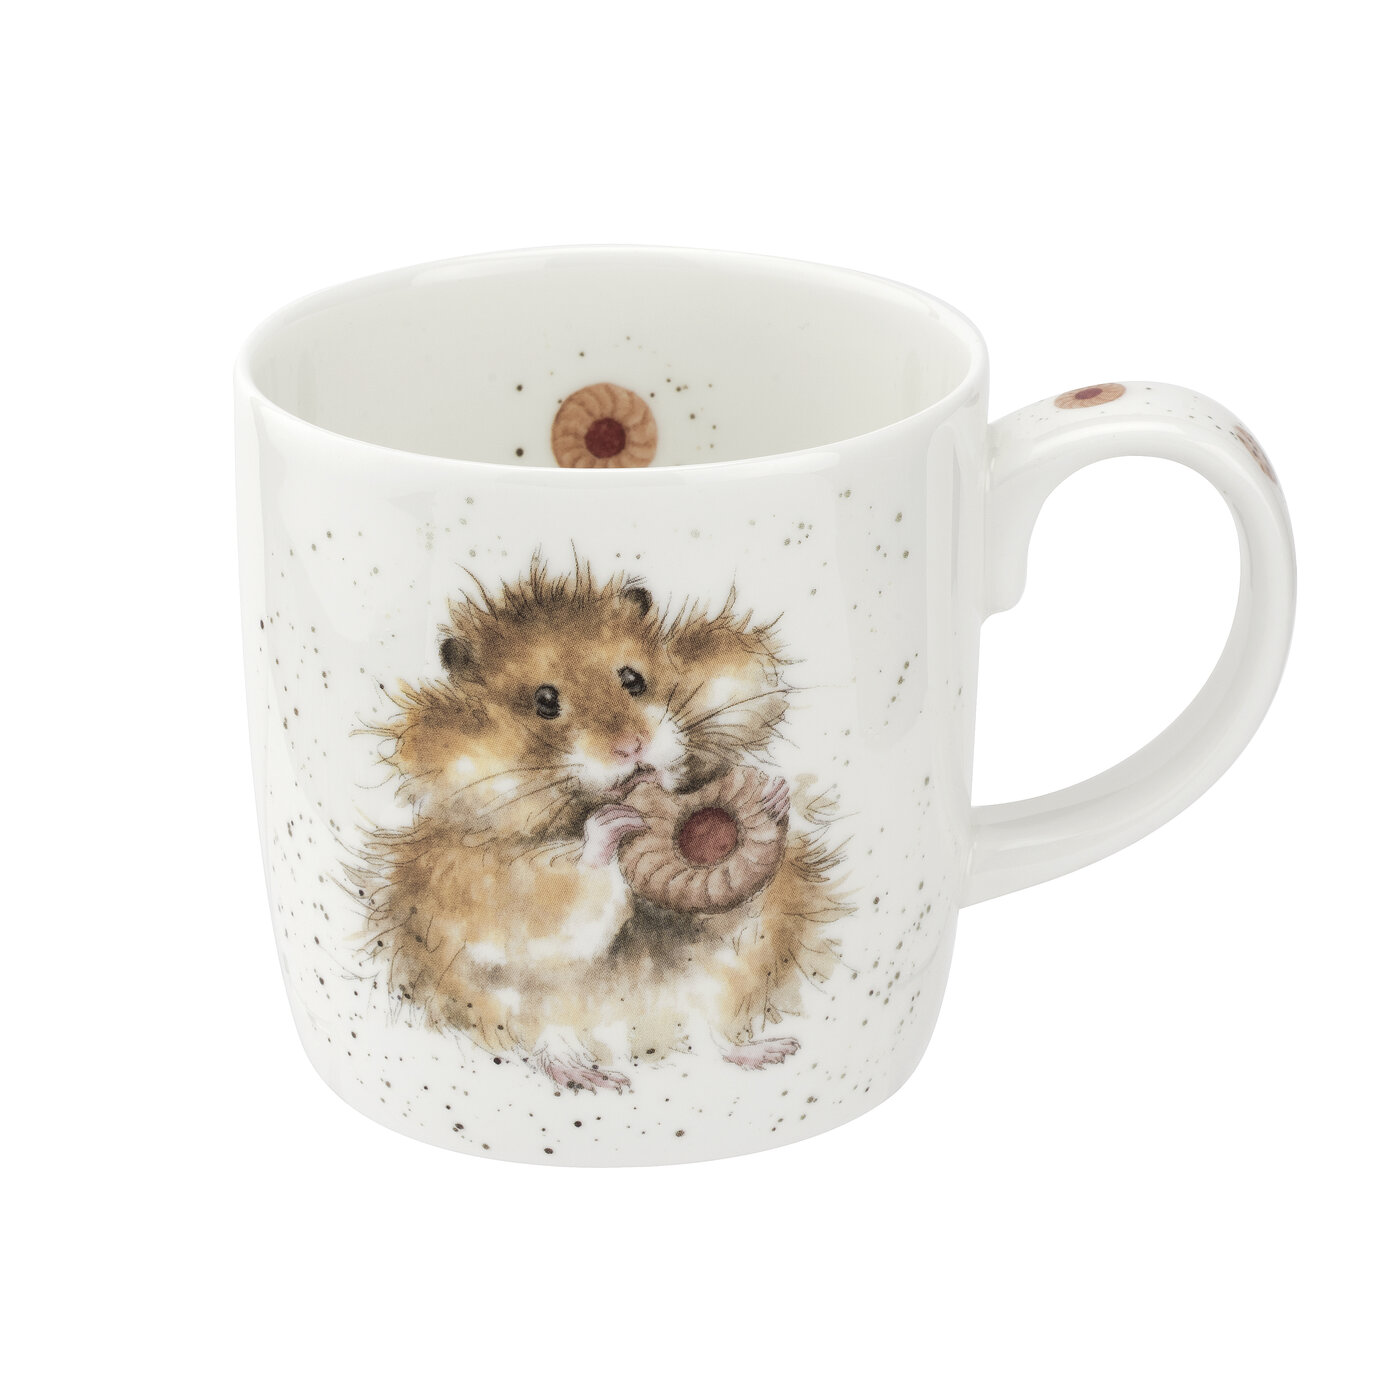 Wrendale Designs 14 Ounce Mug Diet Starts Tomorrow (Hamster) image number 0